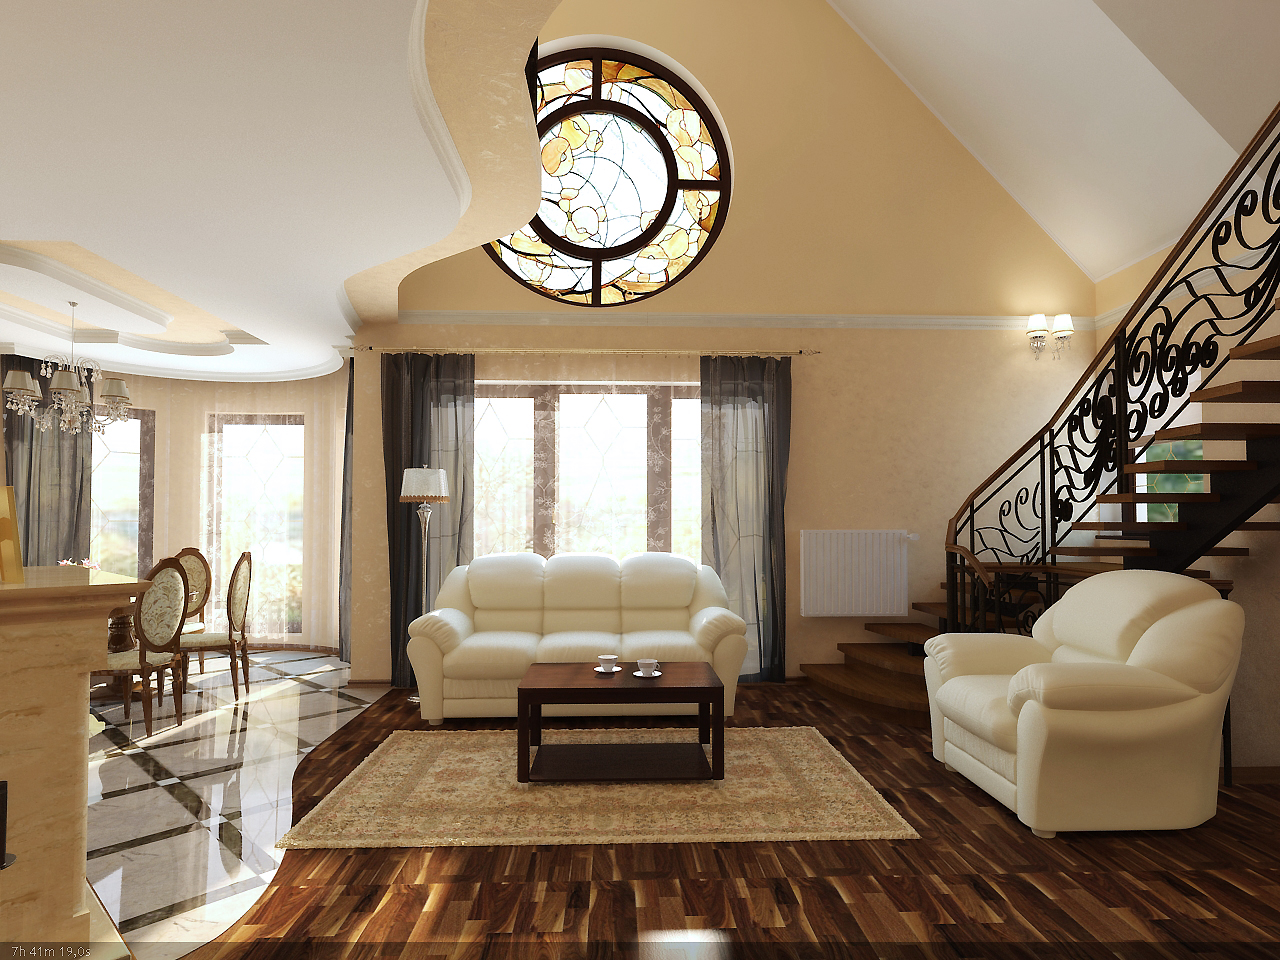 More classic interior designs